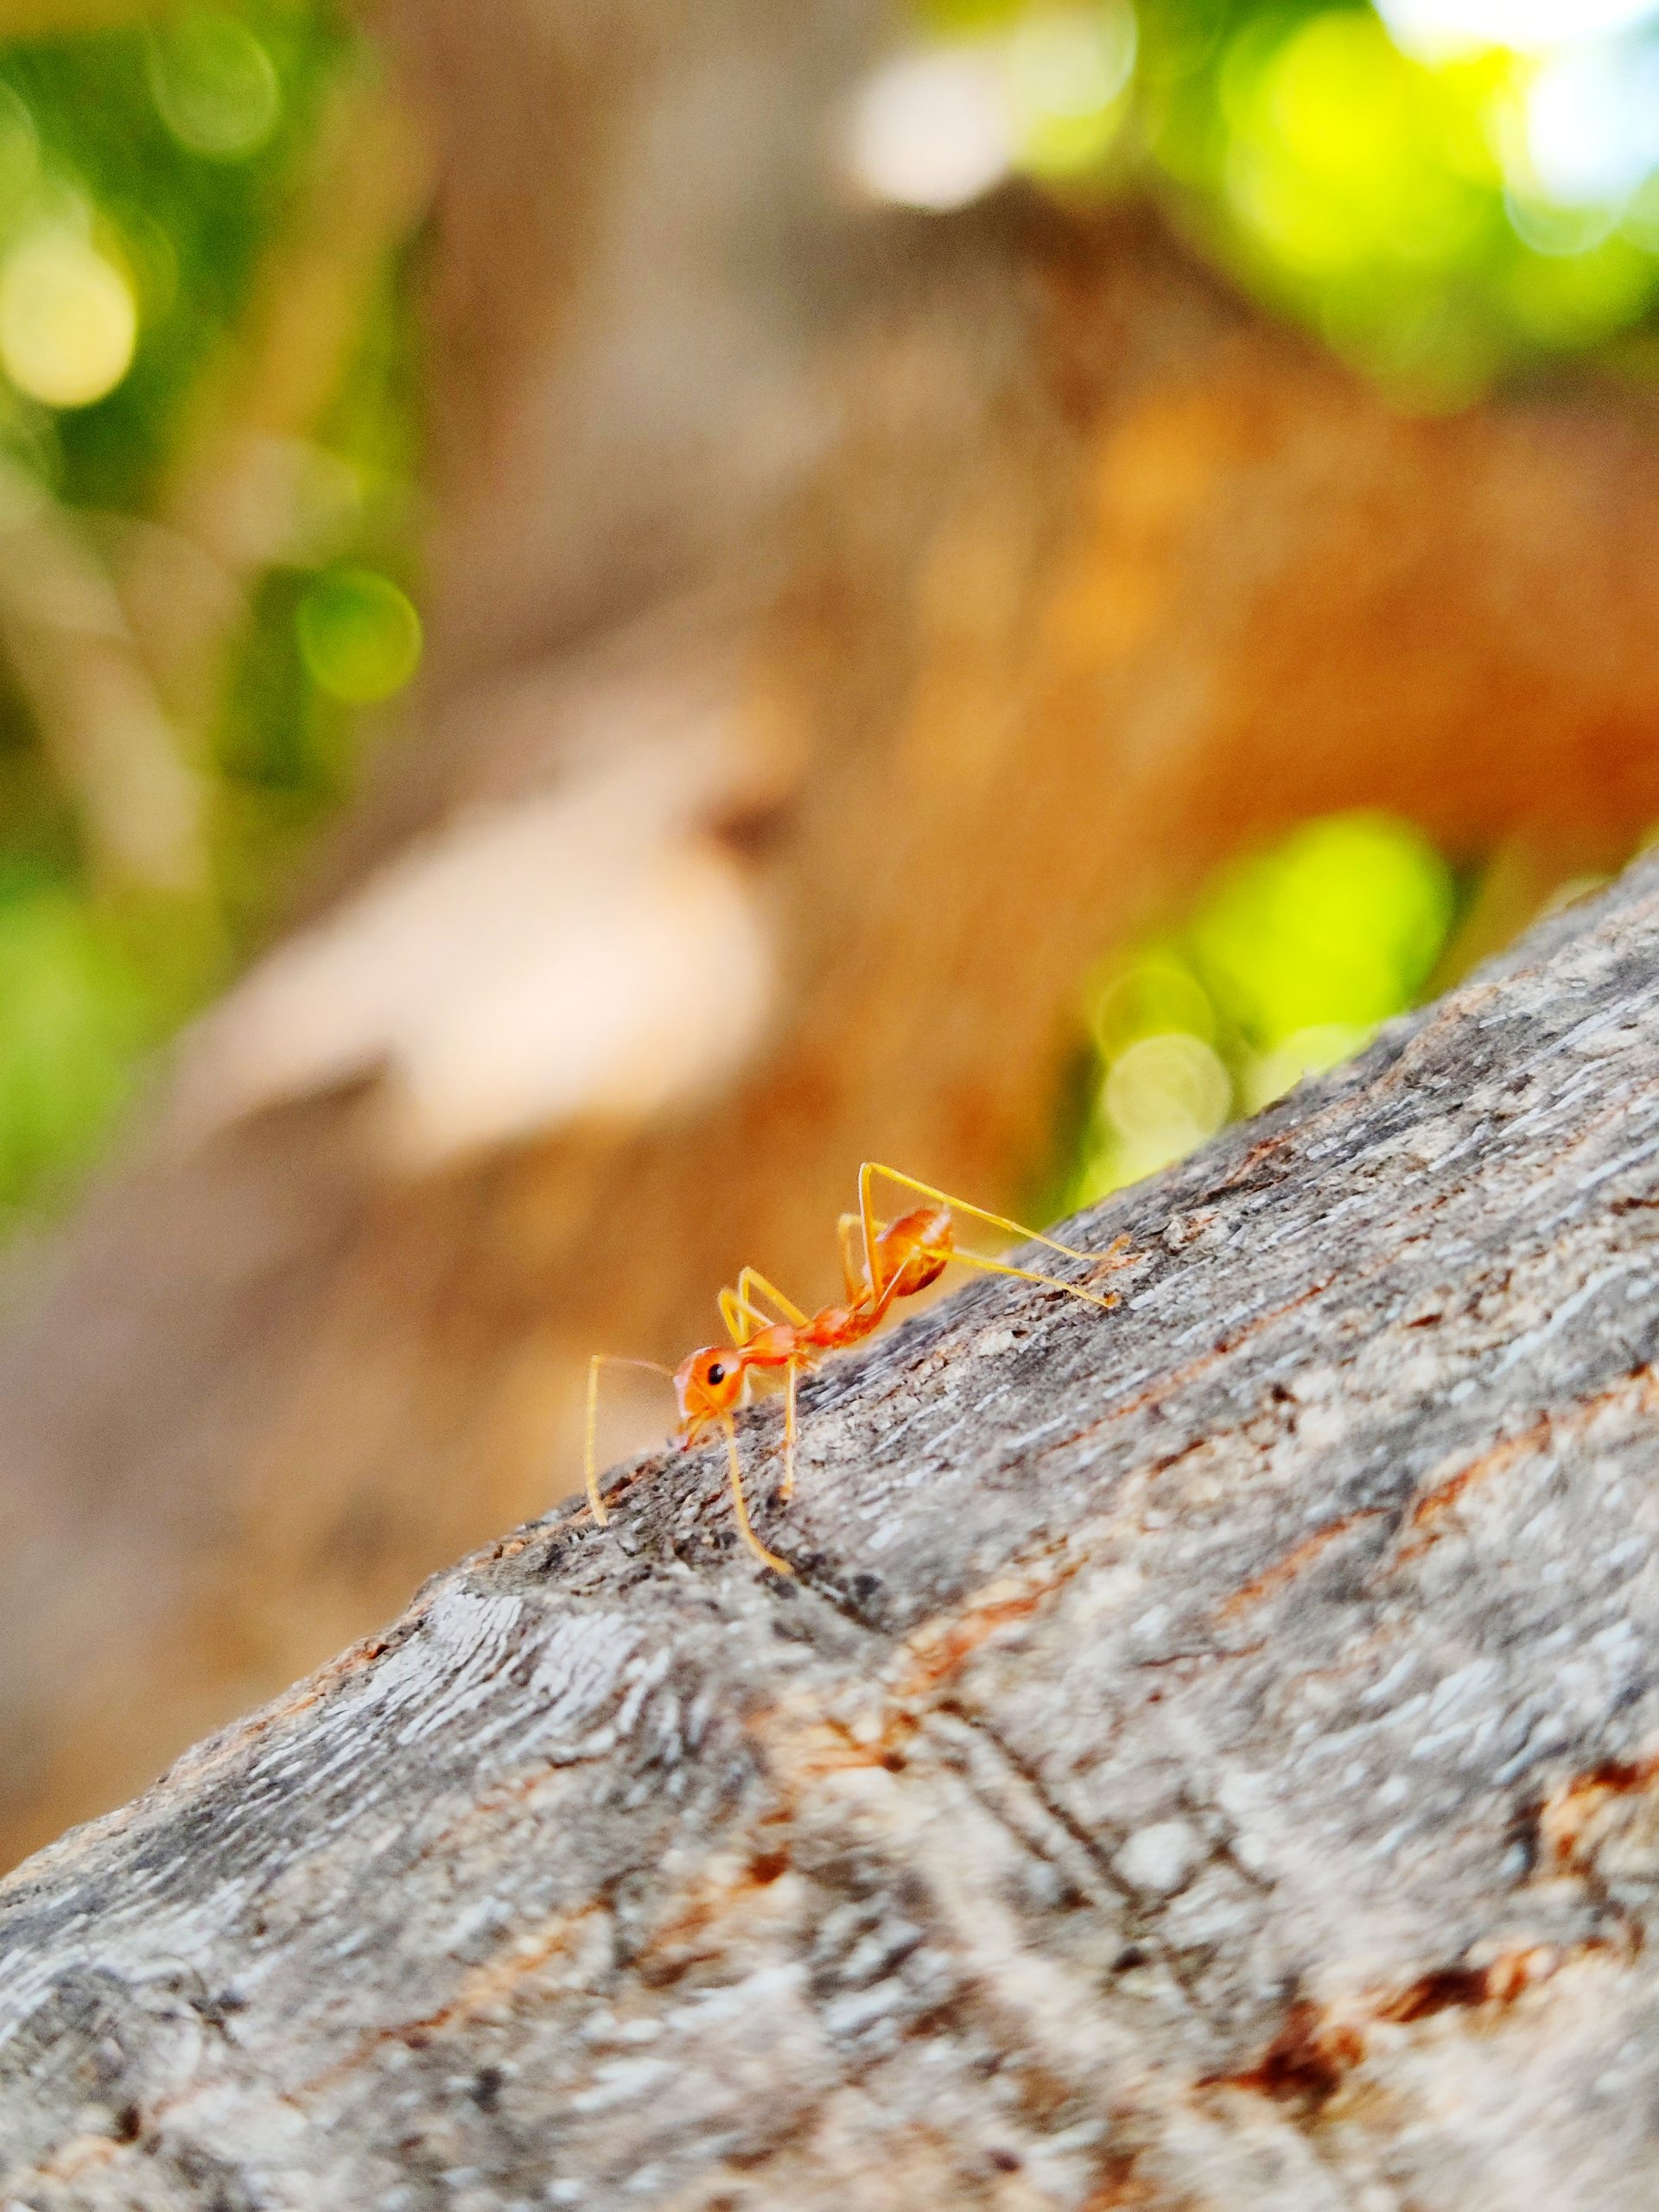 Ant on the tree trunk